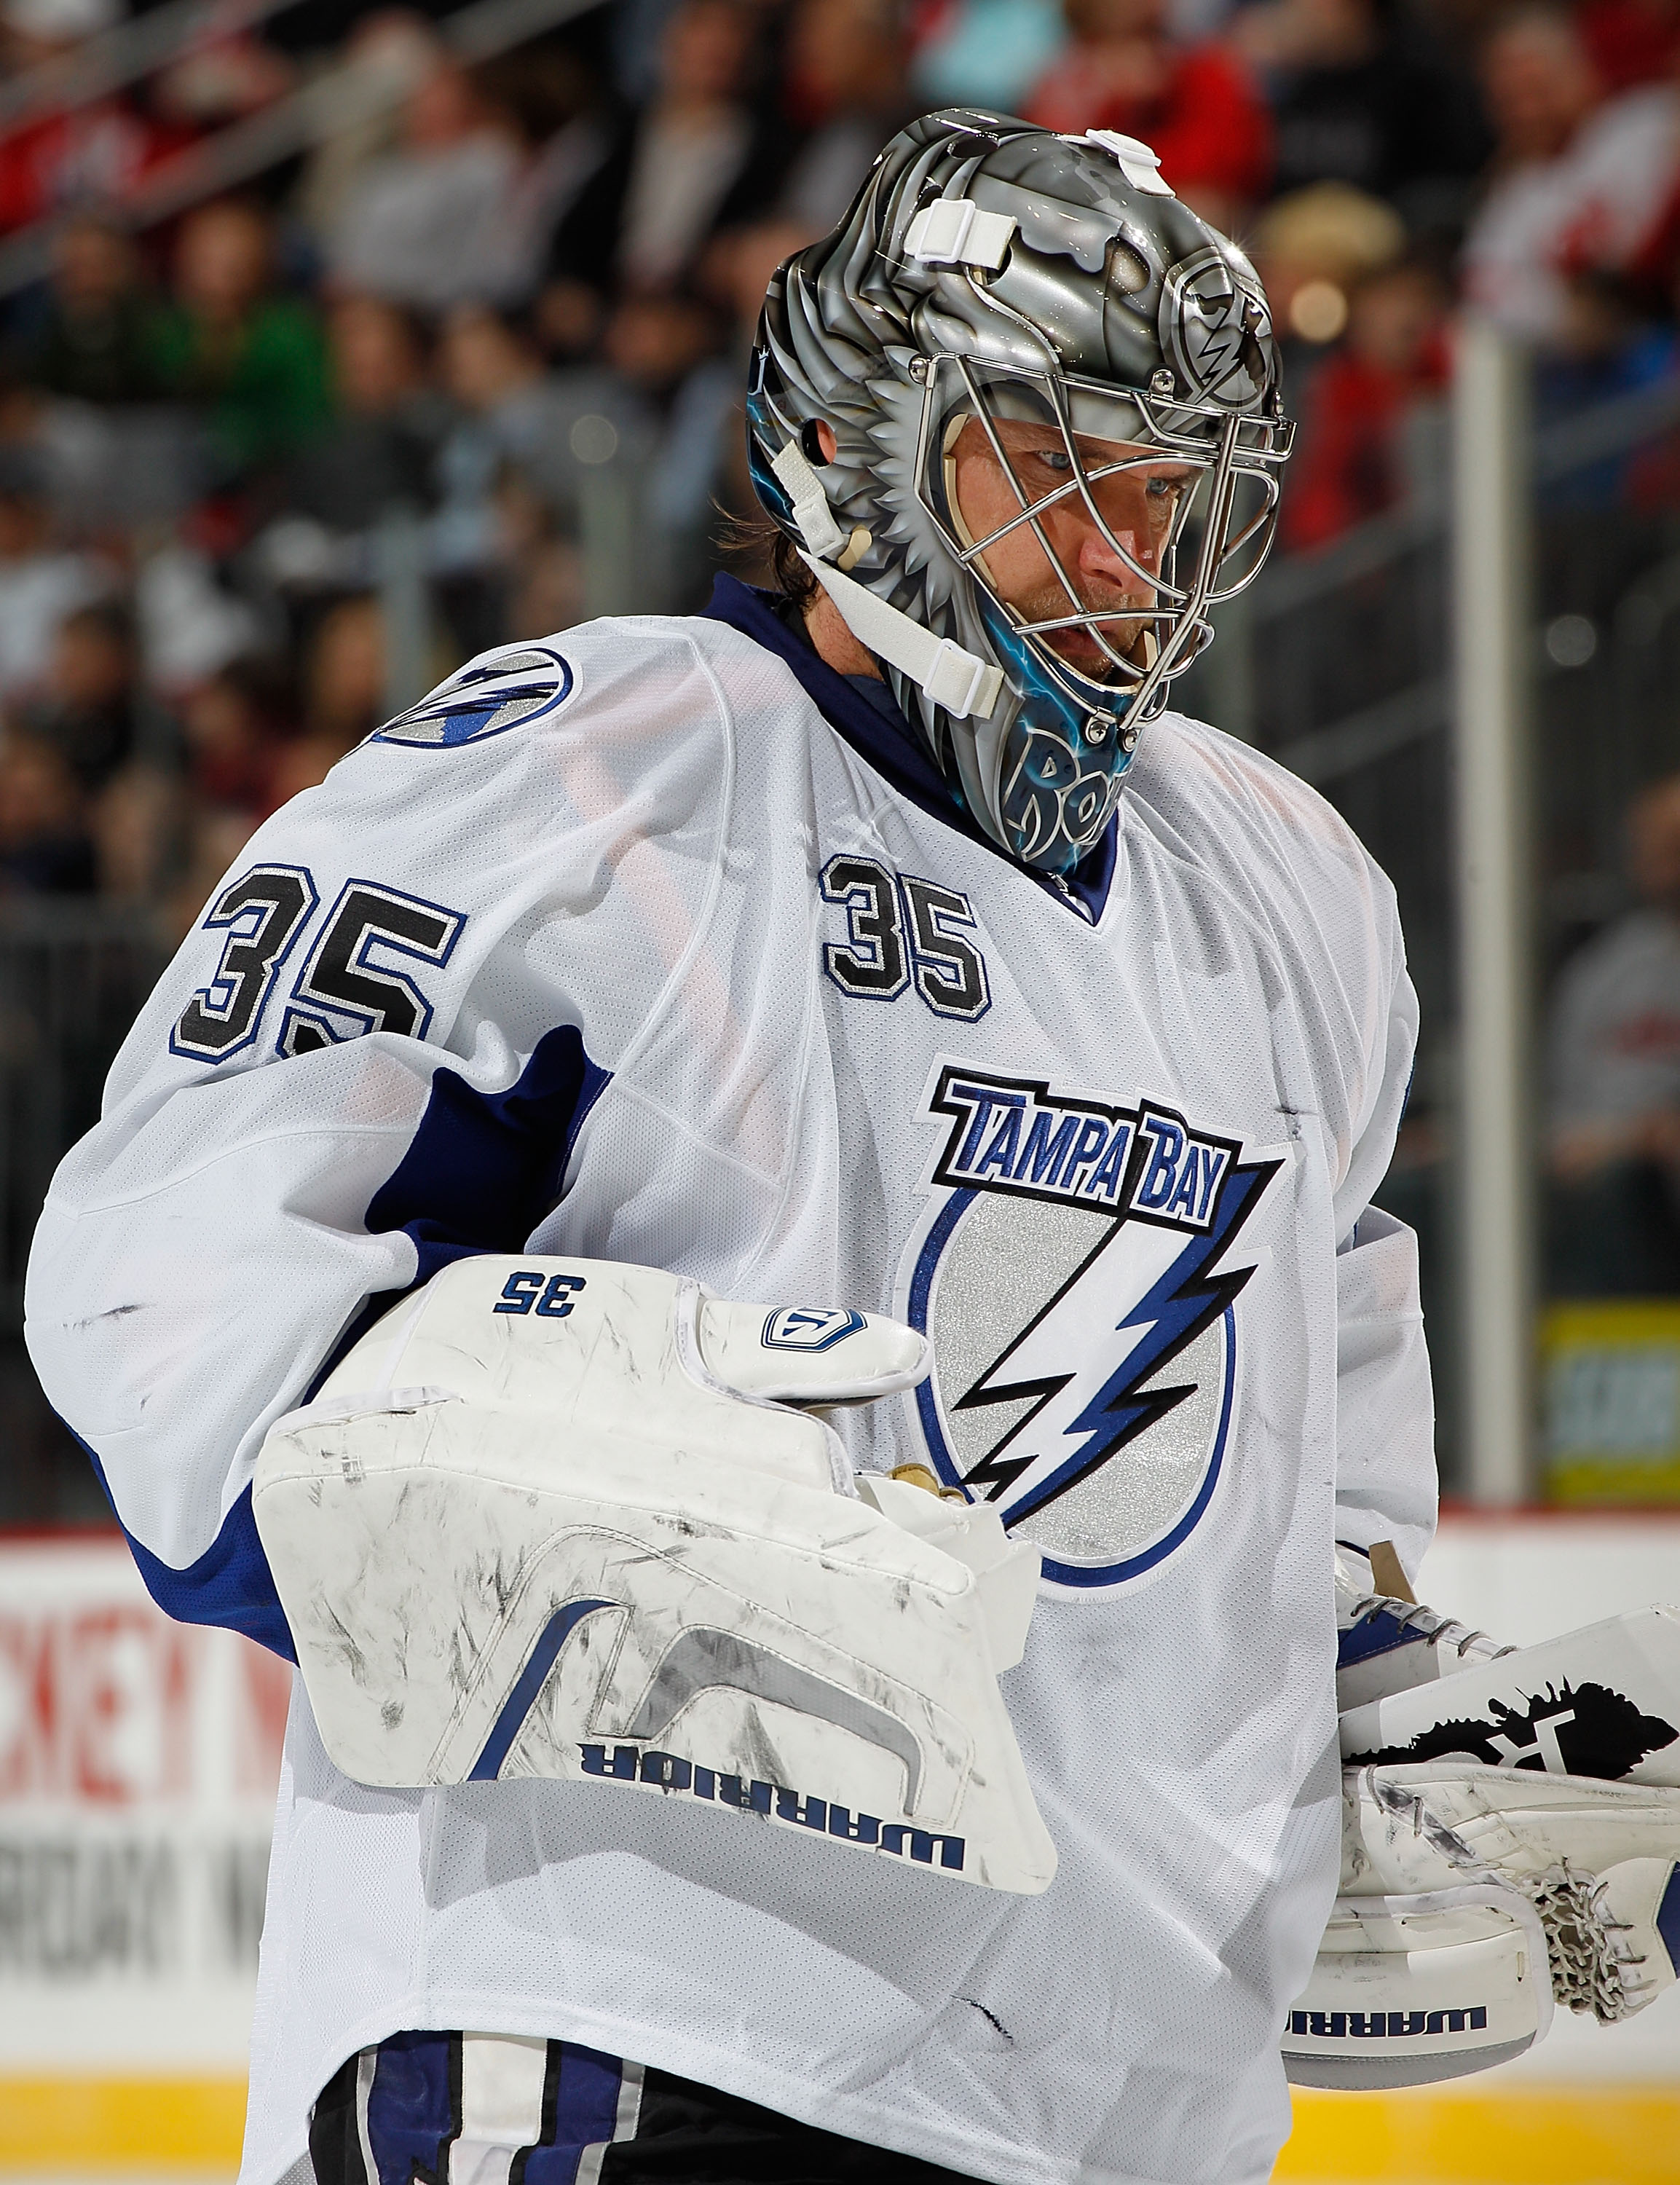 NEWARK, NJ - MARCH 02:  Goalie Dwayne Roloson #35 of the Tampa Bay Lightning relaxes during a timeout in an NHL hockey game against the New Jersey Devils at the Prudential Center on March 2, 2011 in Newark, New Jersey.  (Photo by Paul Bereswill/Getty Imag